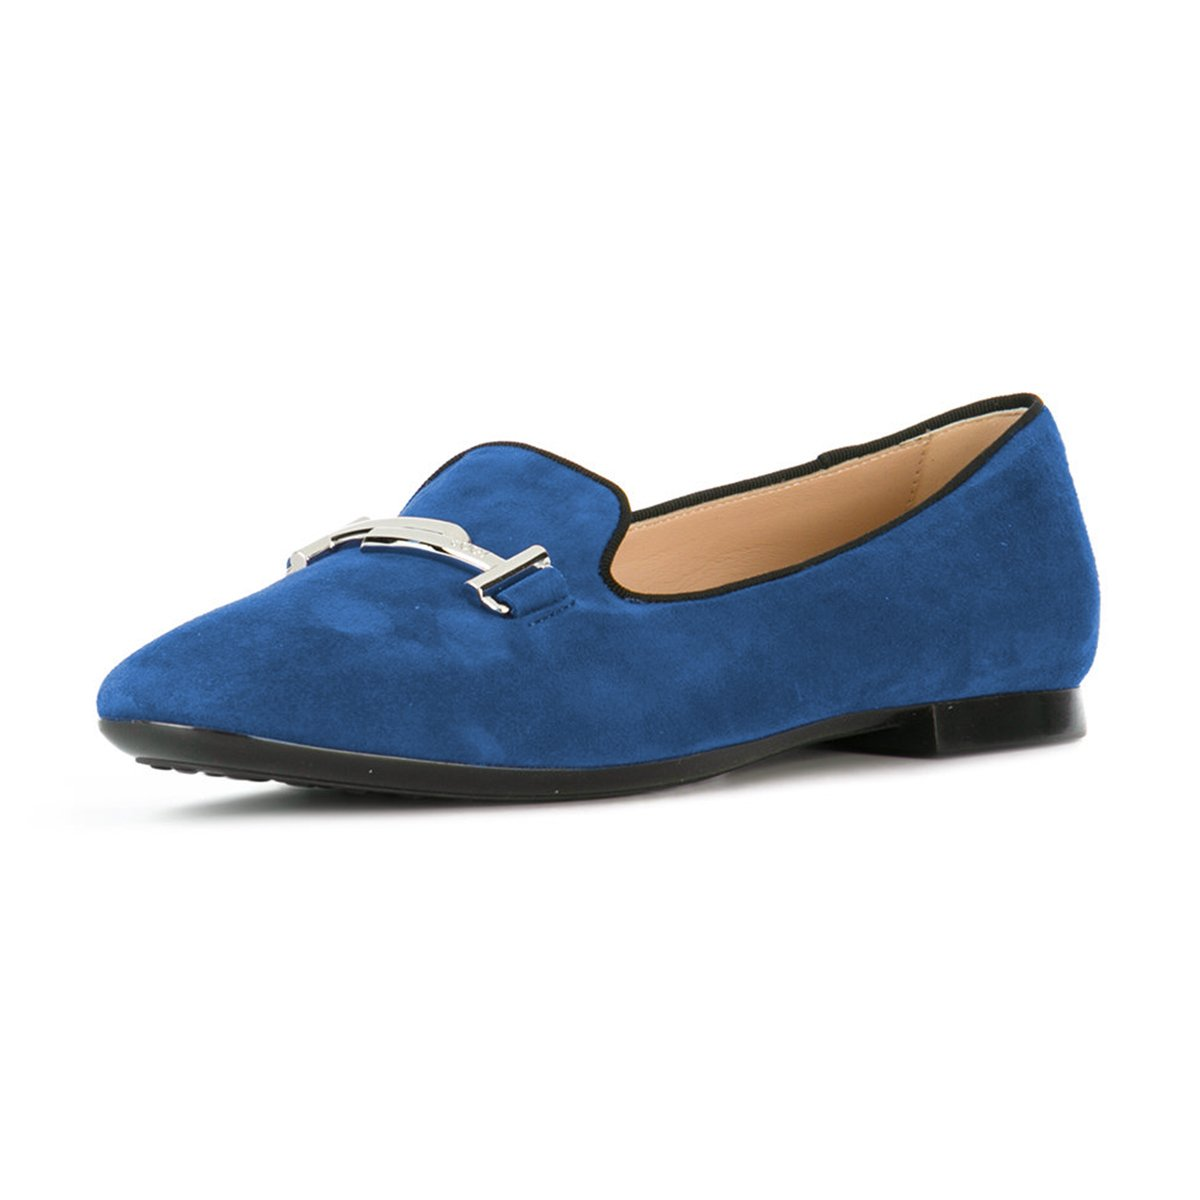 XYD Comfortable Low Heel Slip On Suede Flats Pointed Toe Ballet Loafer Dress Shoes for Women B0794T76DS 10 B(M) US|Navy